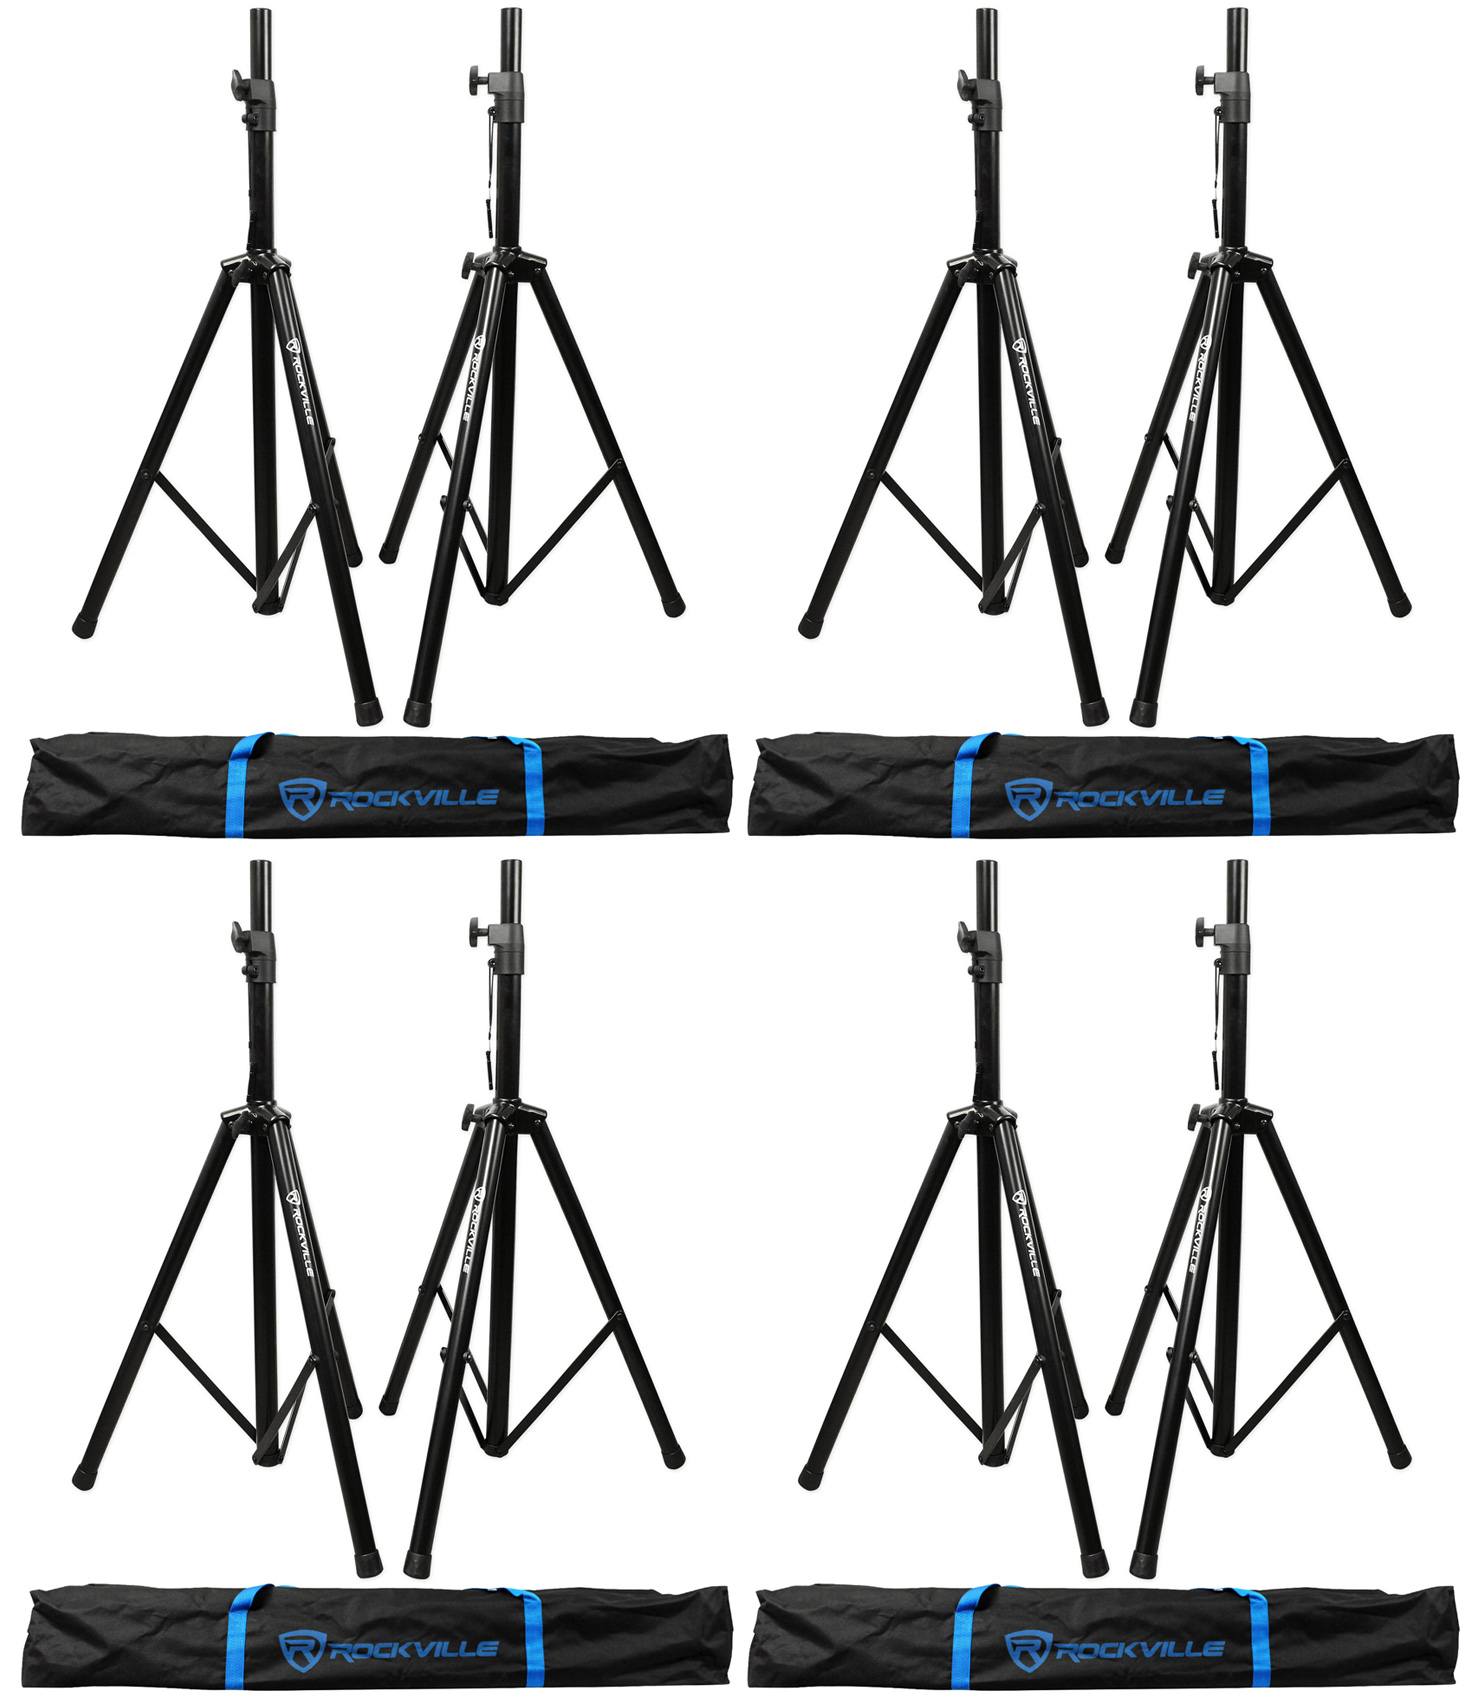 (4) Pairs Rockville Tripod DJ PA Speaker Stands+Carrying Cases 8 Stands Total by